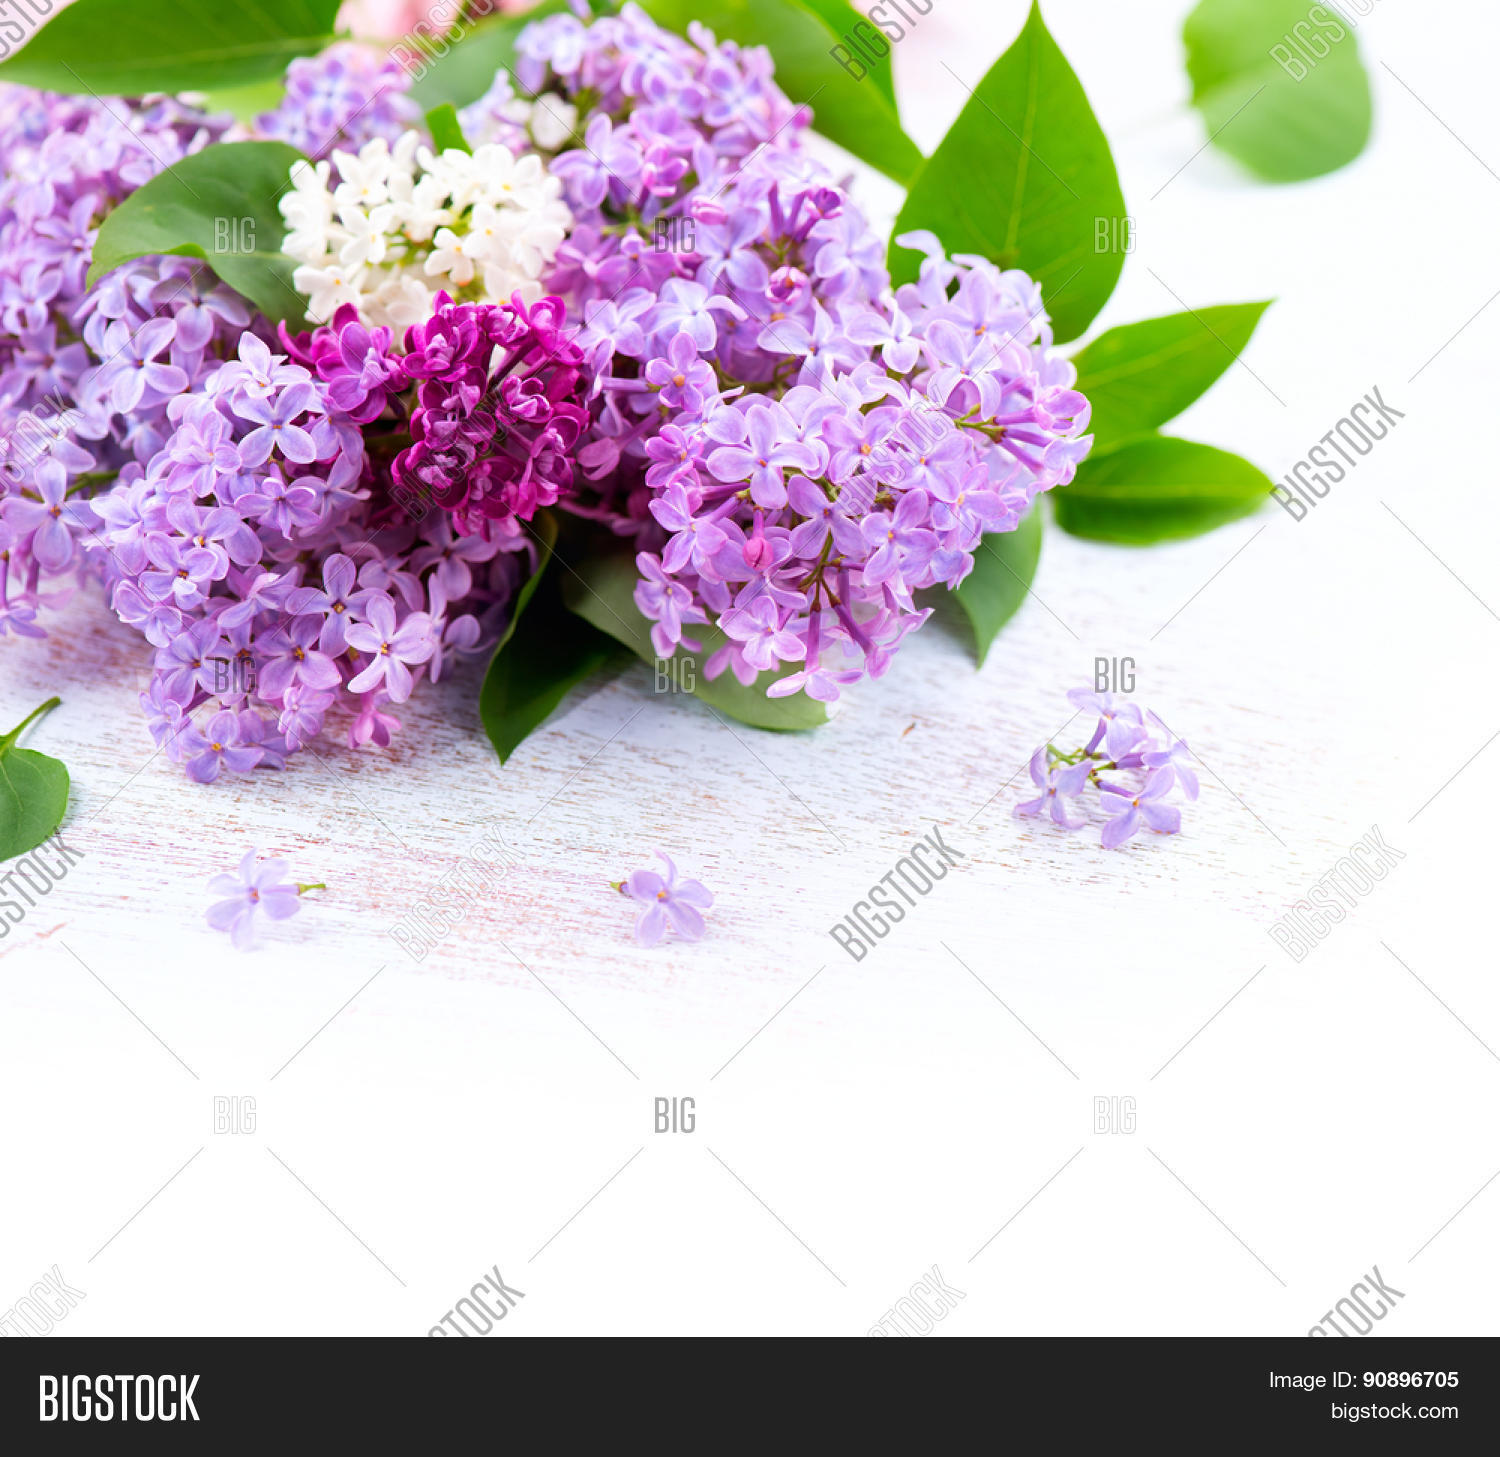 Lilac flowers bunch over white image photo bigstock lilac flowers bunch over white wooden background beautiful violet lilac flower border design closeup mightylinksfo